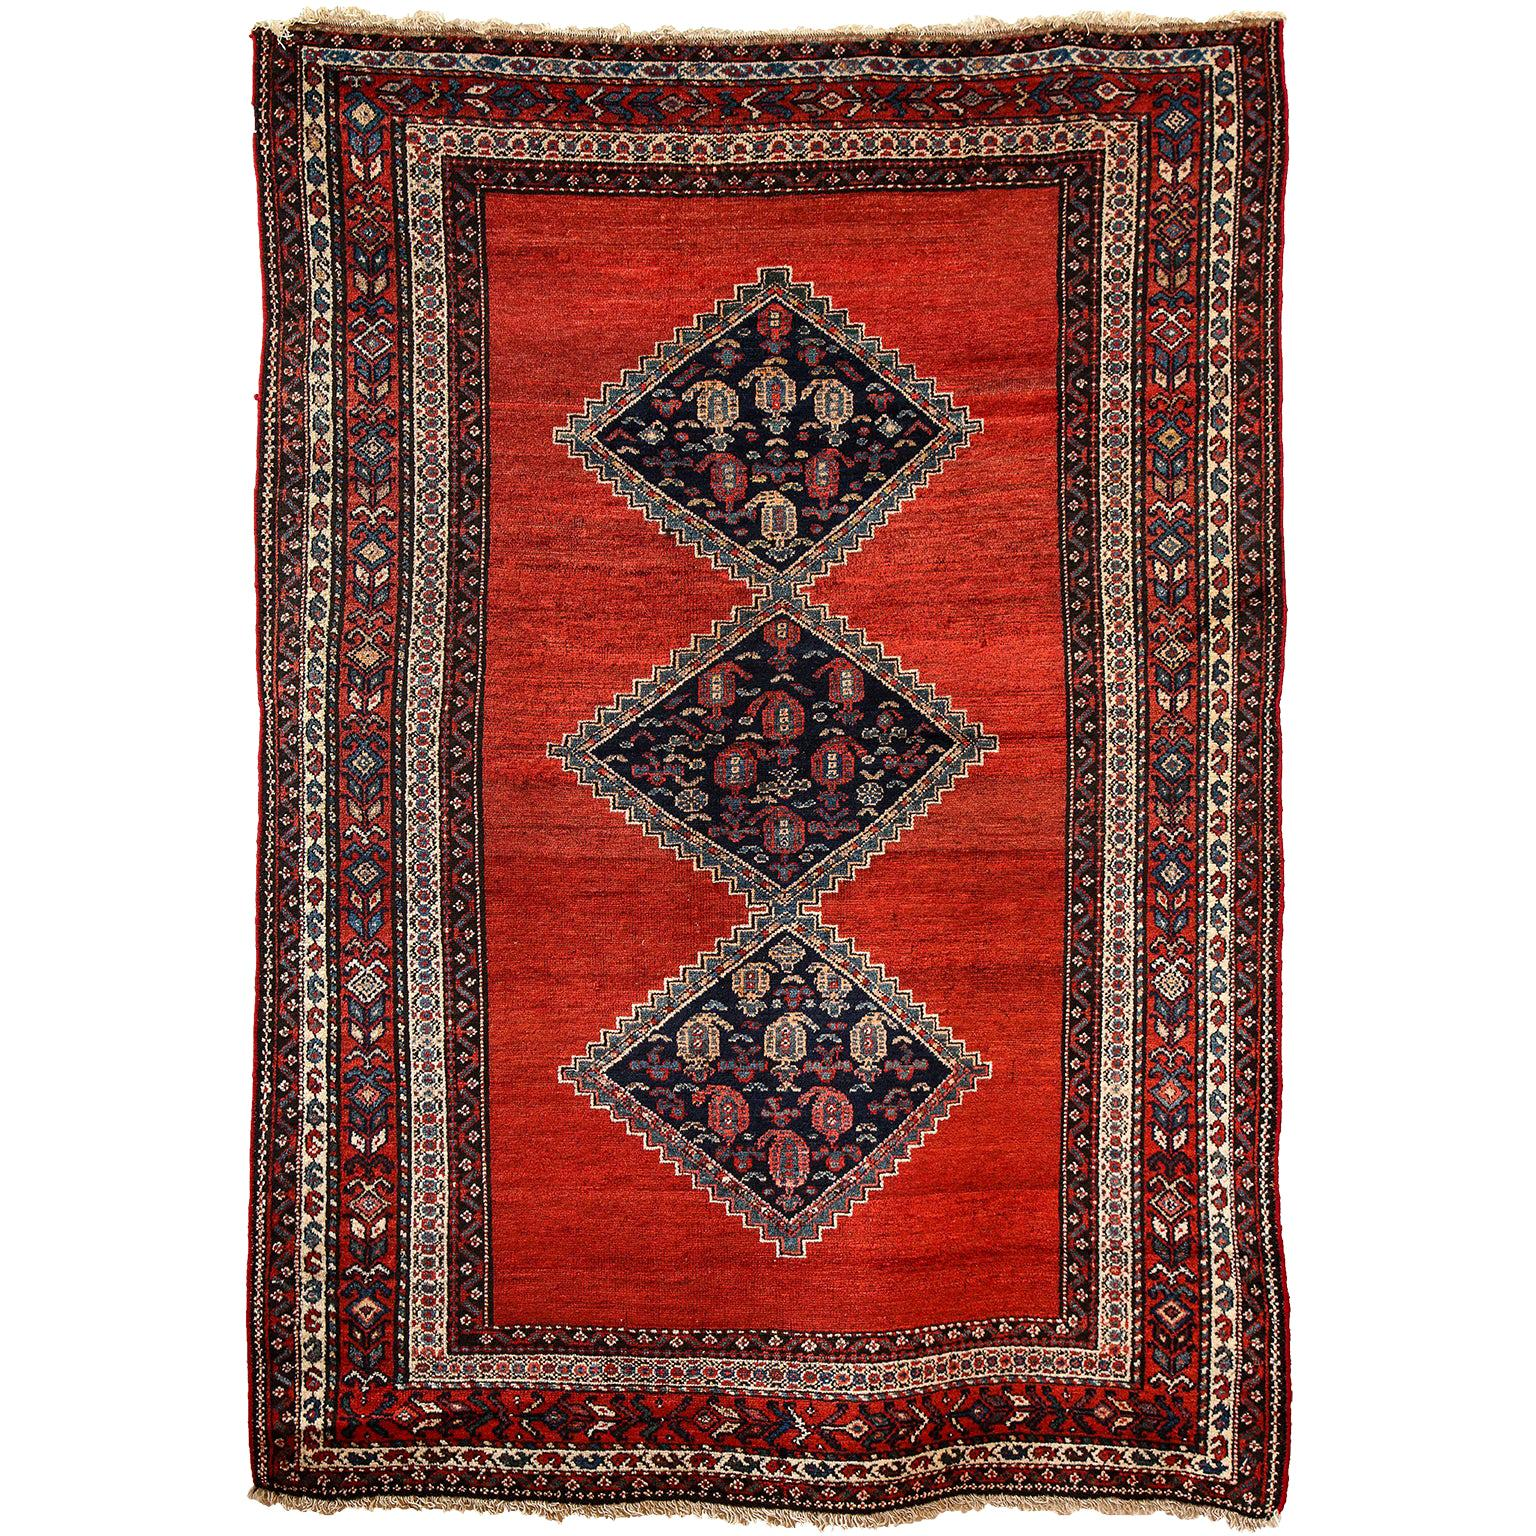 Antique Persian Malayer Carpet in Pure Wool and Vegetable Dyes, circa 1900